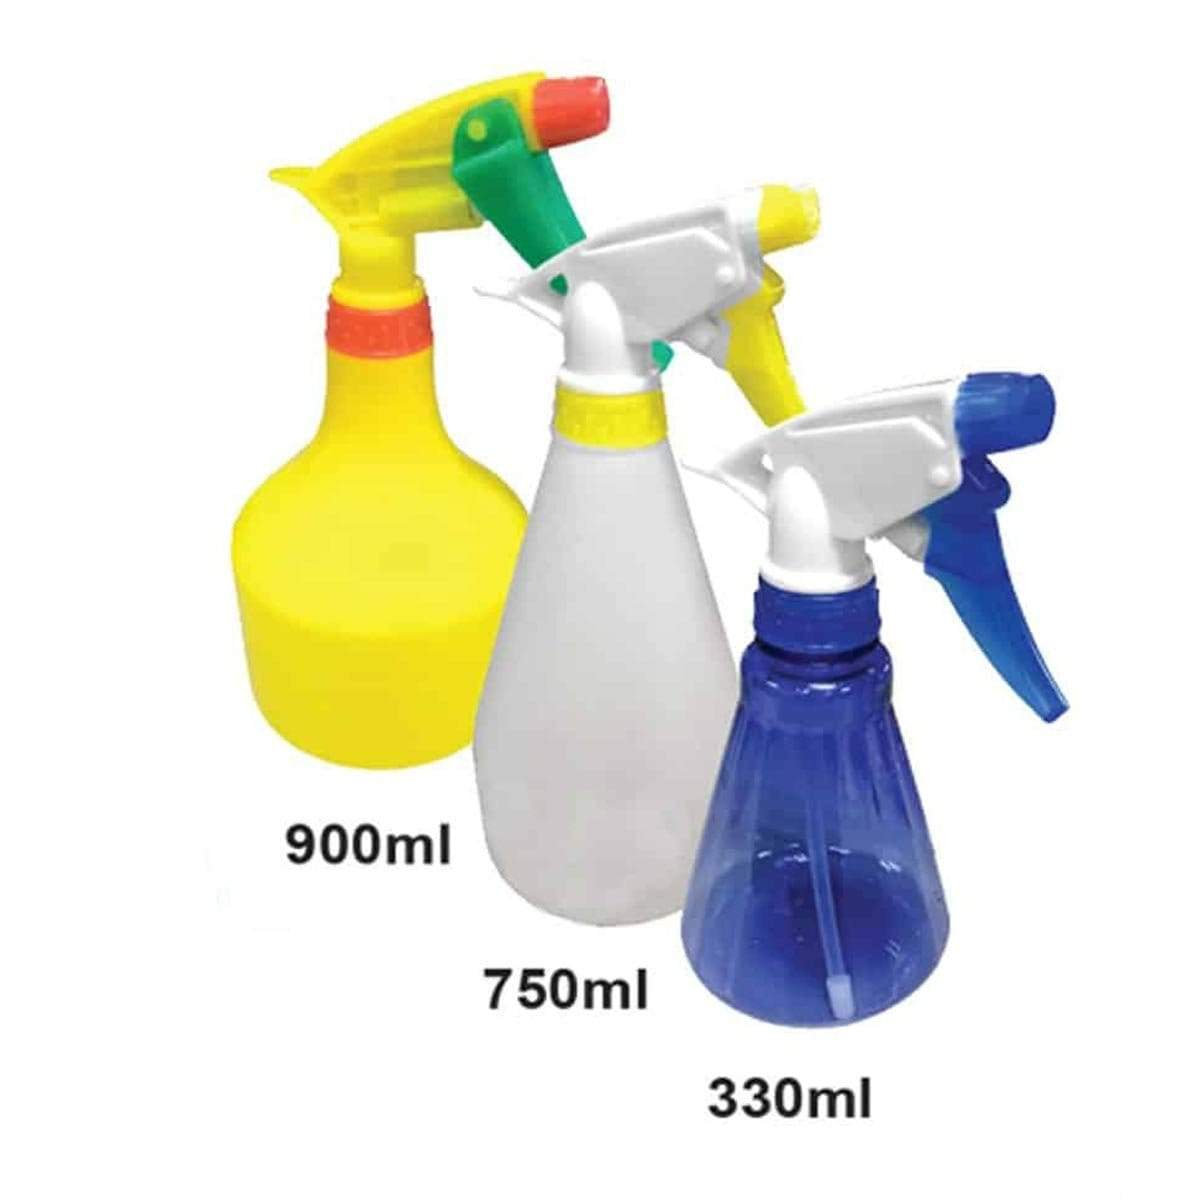 Aneka Water Sprayer Pump Garden Spray Mist Hand Trigger Water Sprayer 330ml ITS330